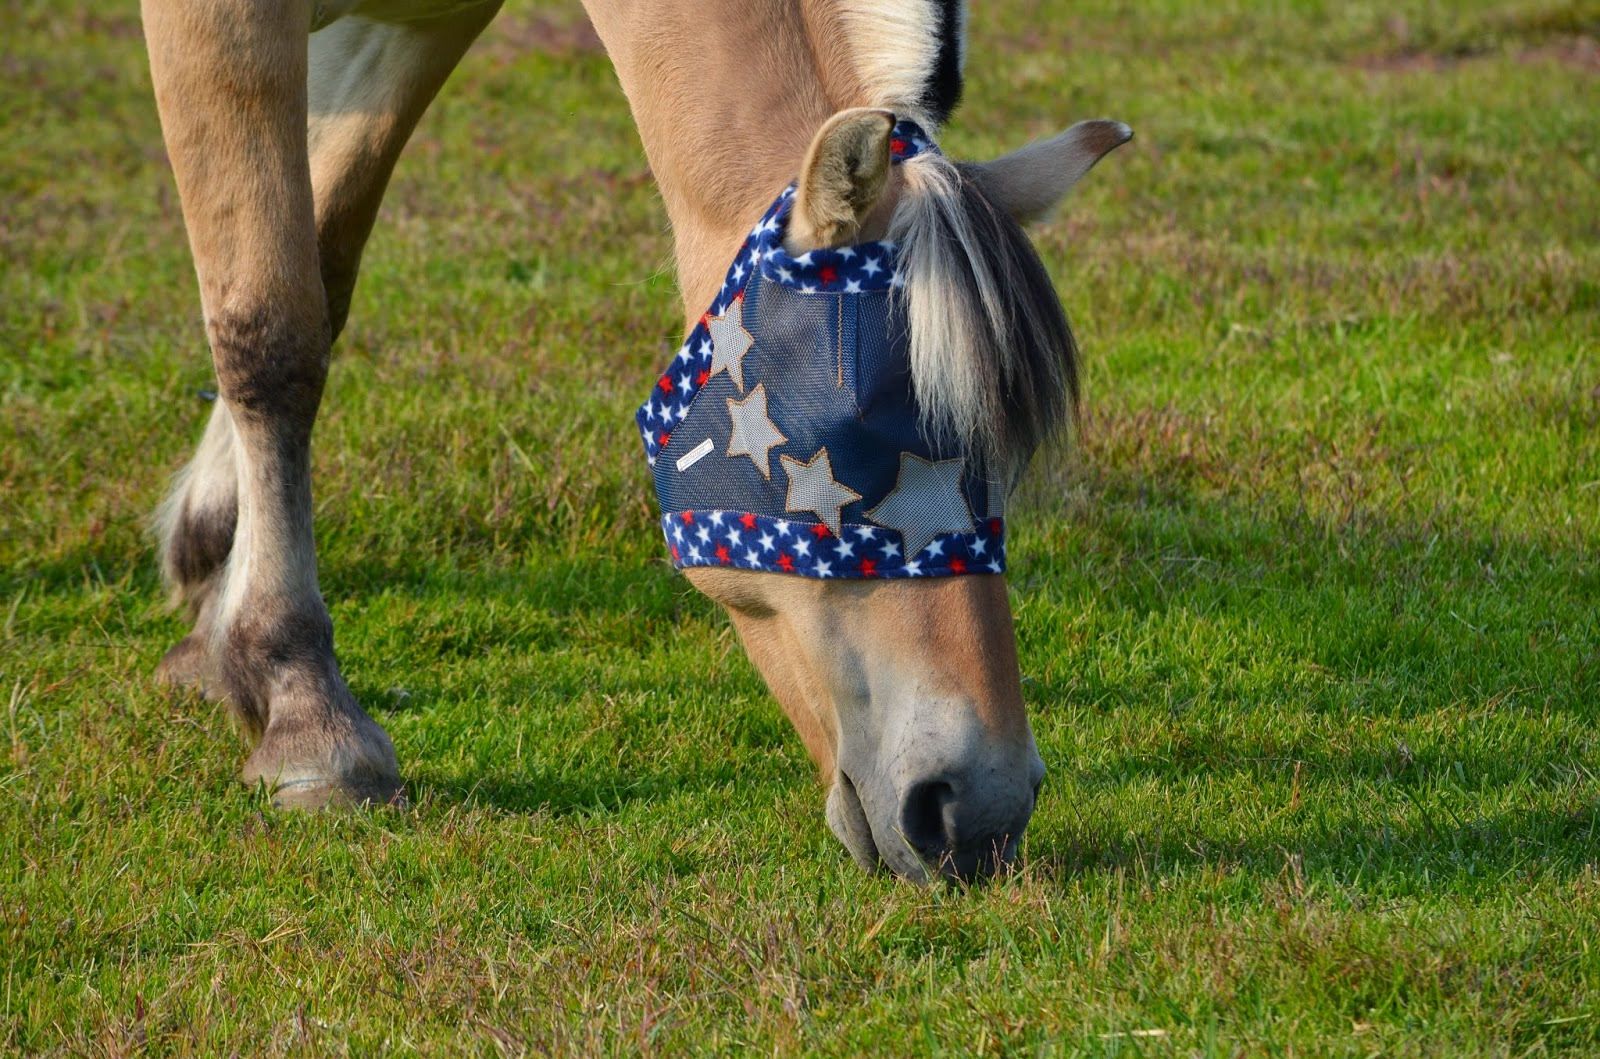 Custom horse fly mask